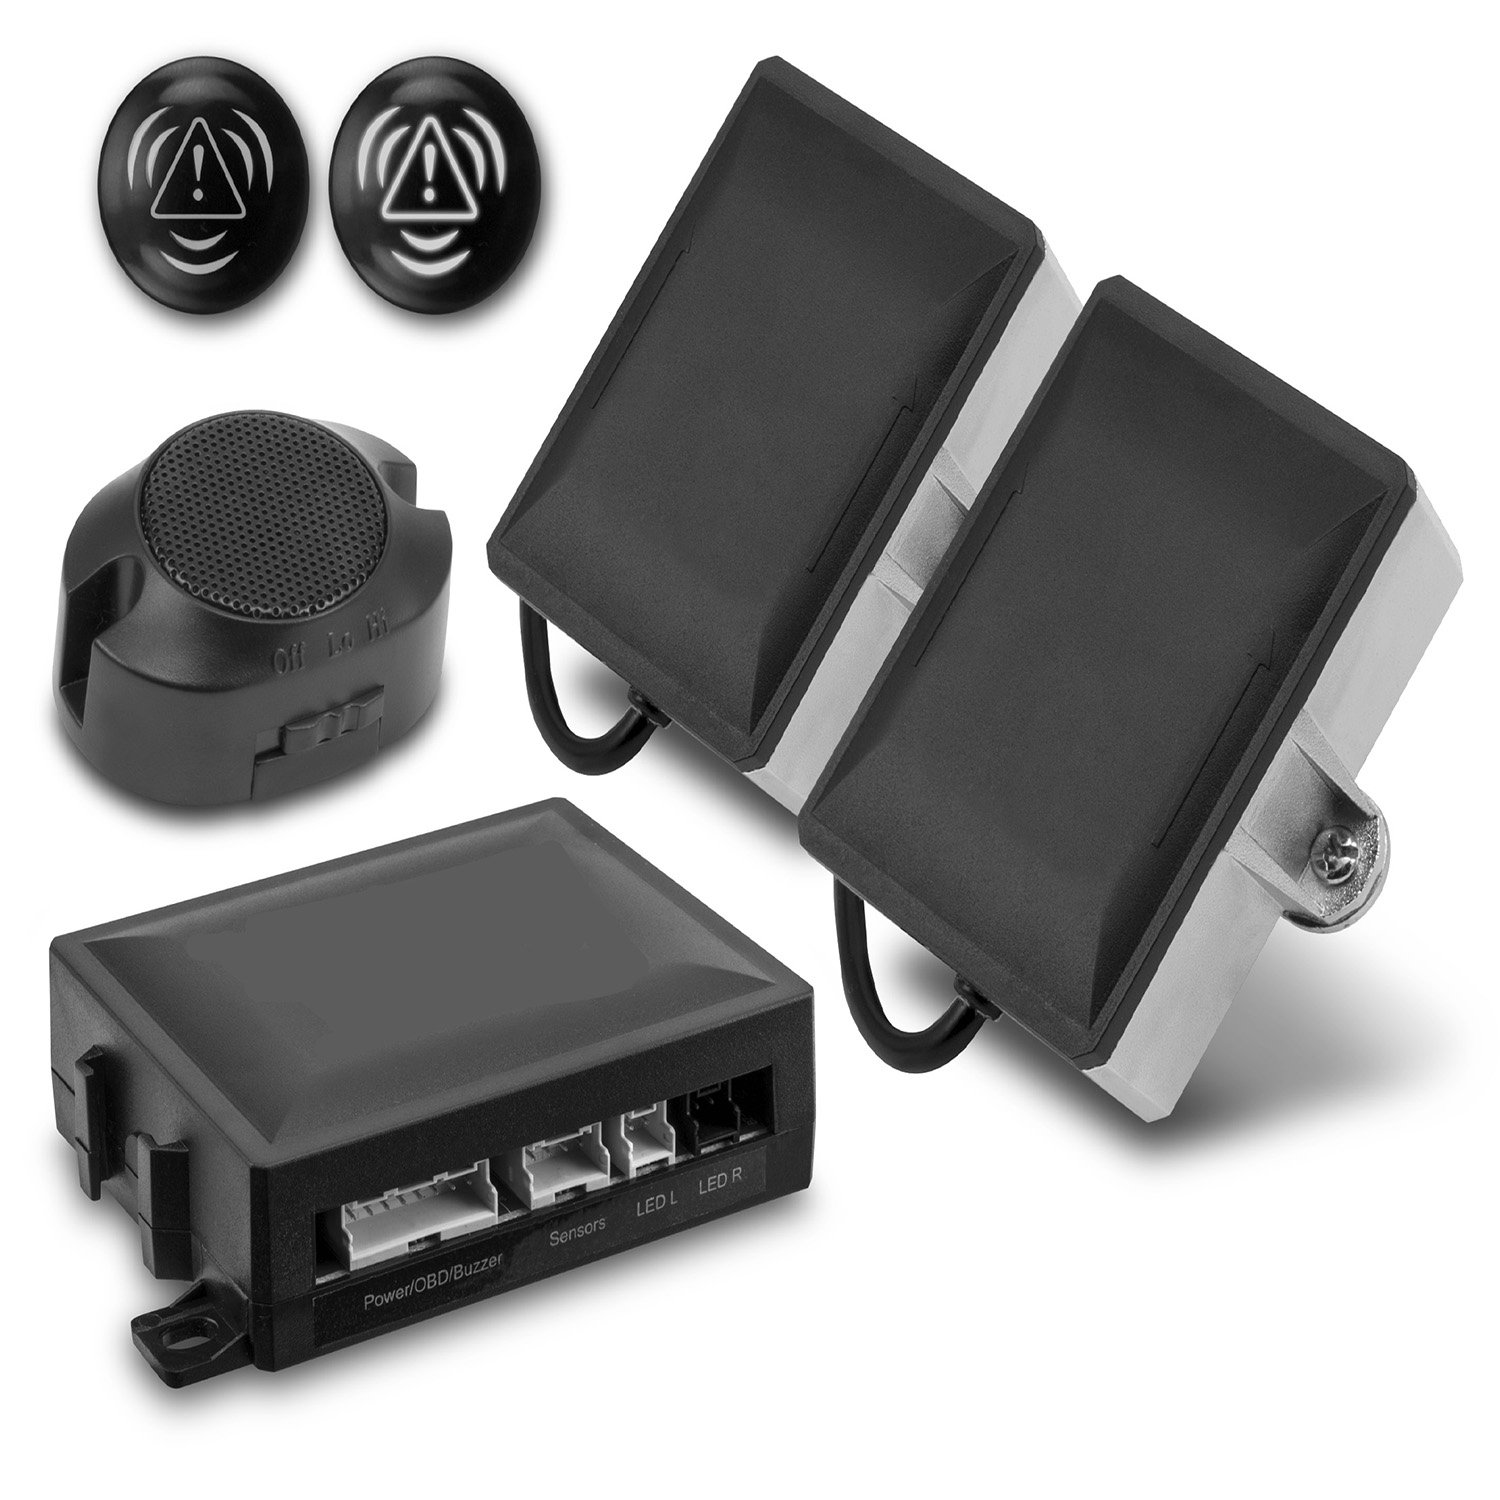 Novosonics NS-BSM Microwave Blind Spot Anti-Collision Detection and Warning kit. Includes Two Blind Spot Sensors and Two LED Warning Indicators. 3 Year Warranty